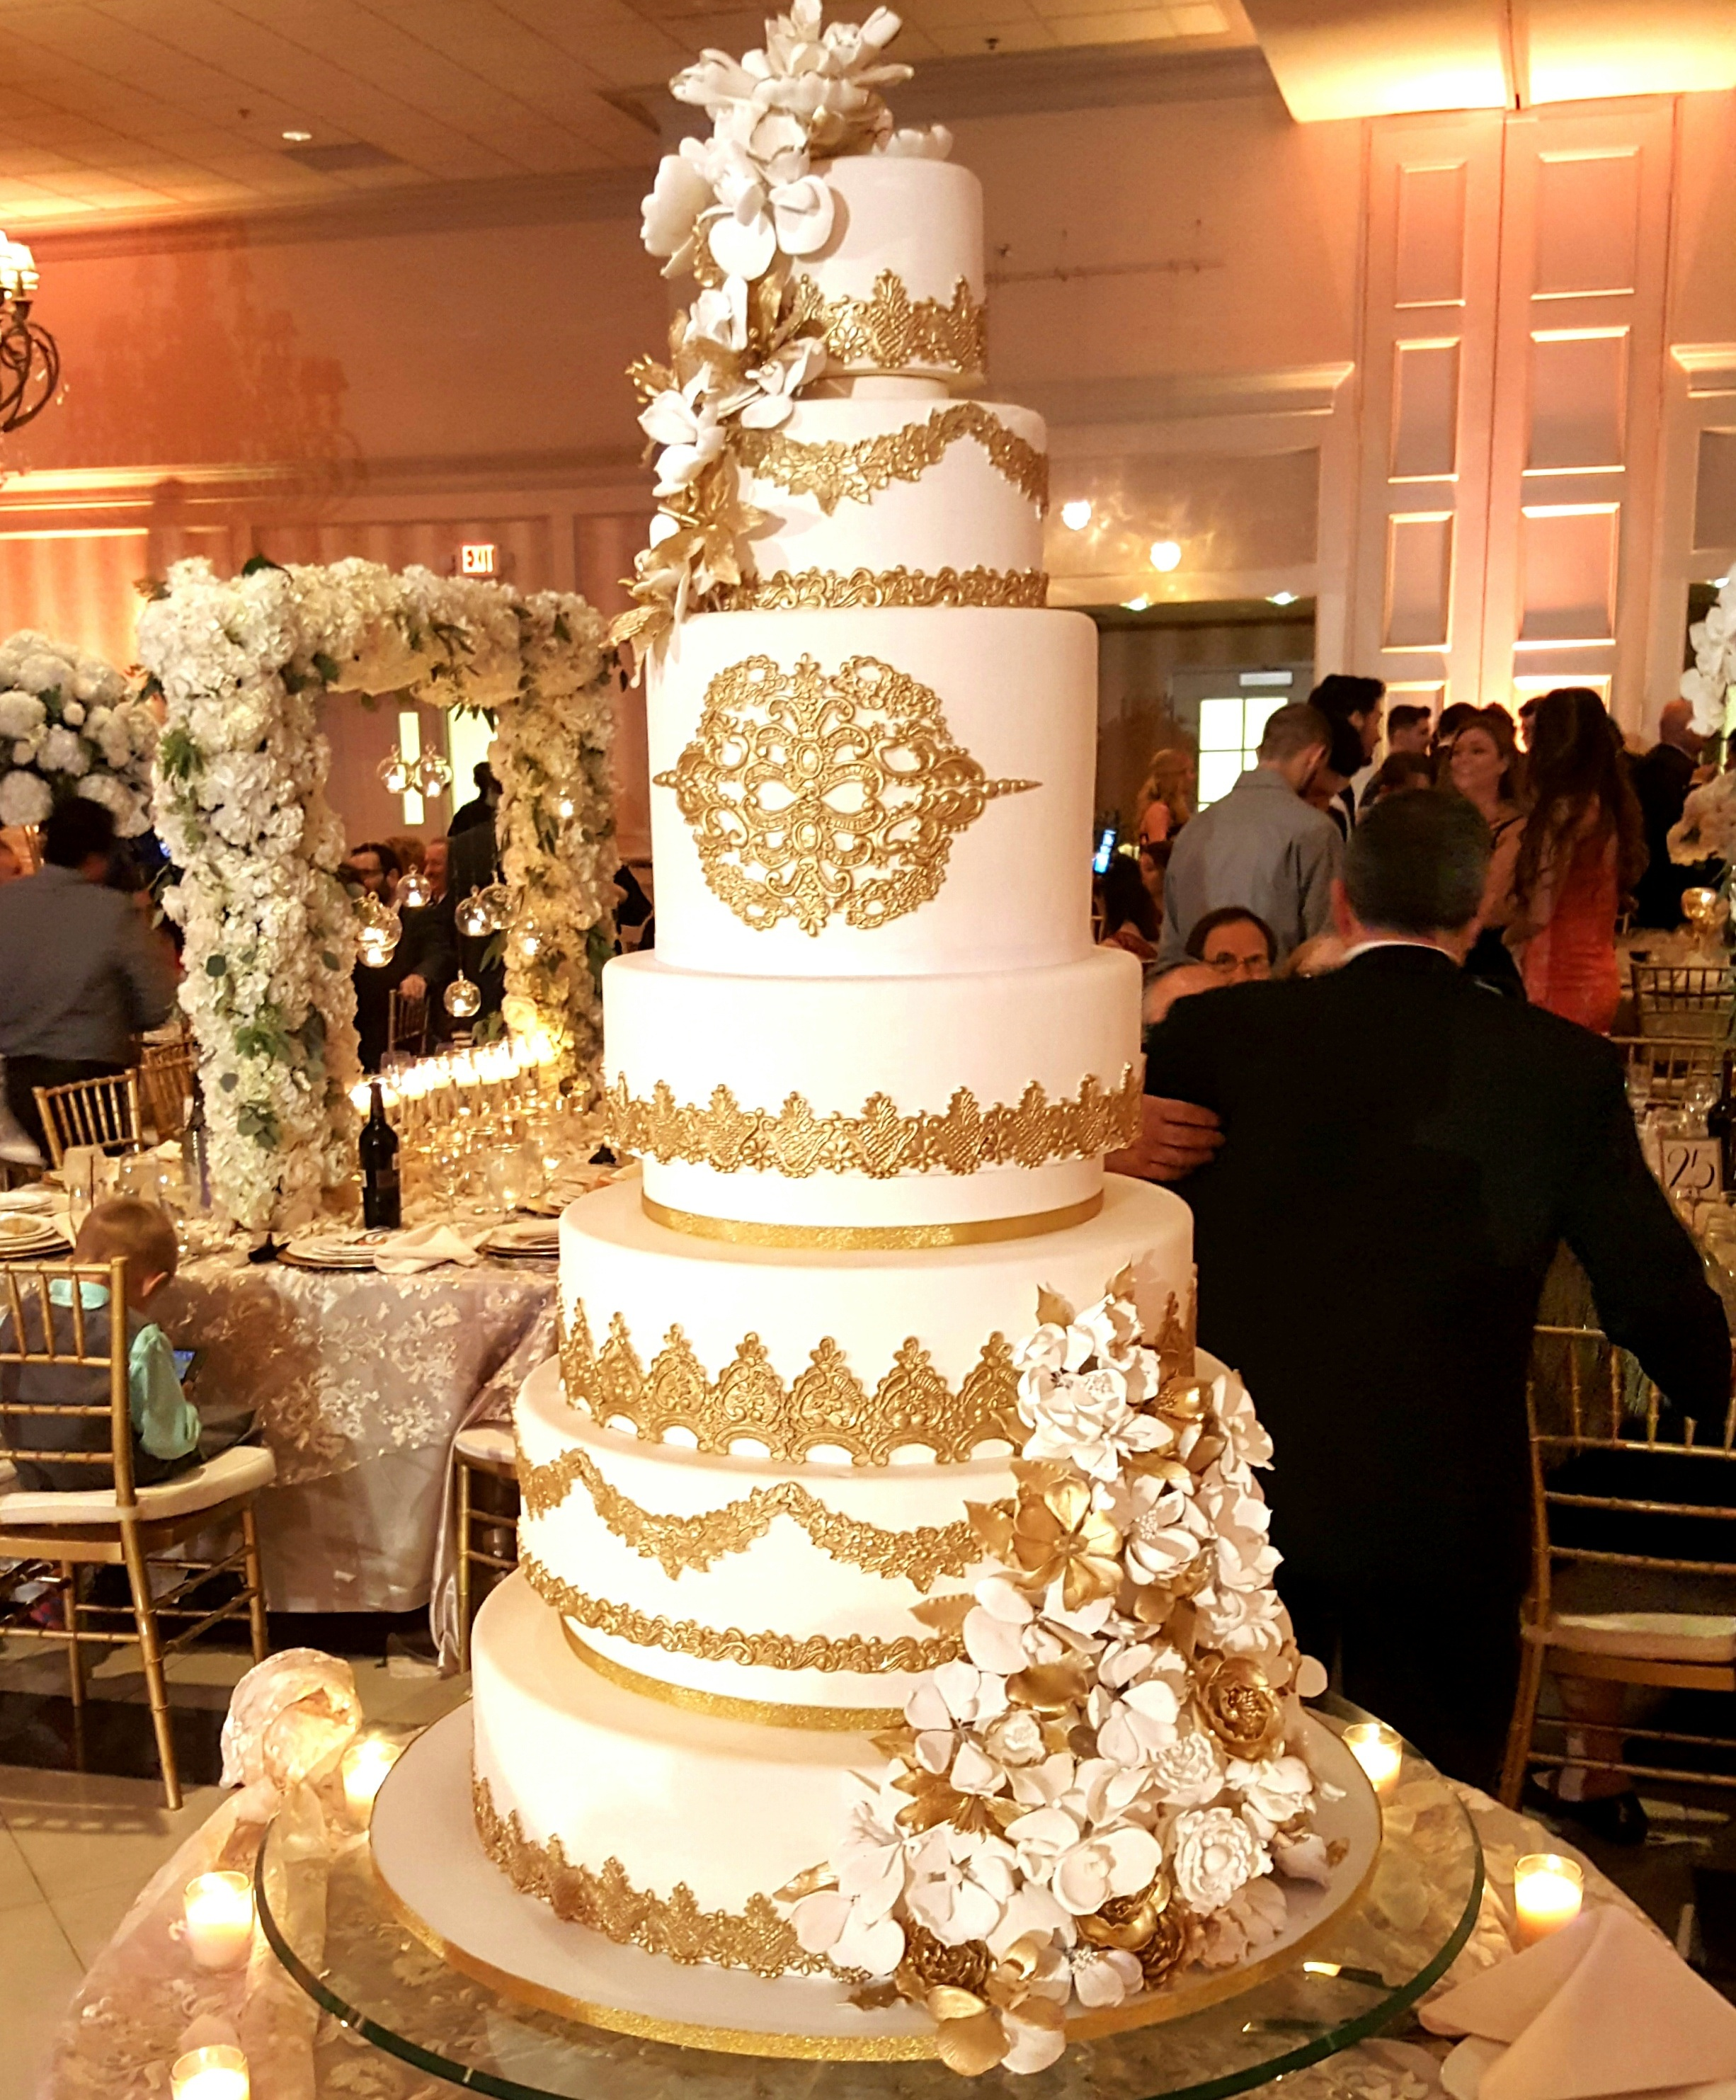 Vintage white wedding cake with gold accents and sugar flowers